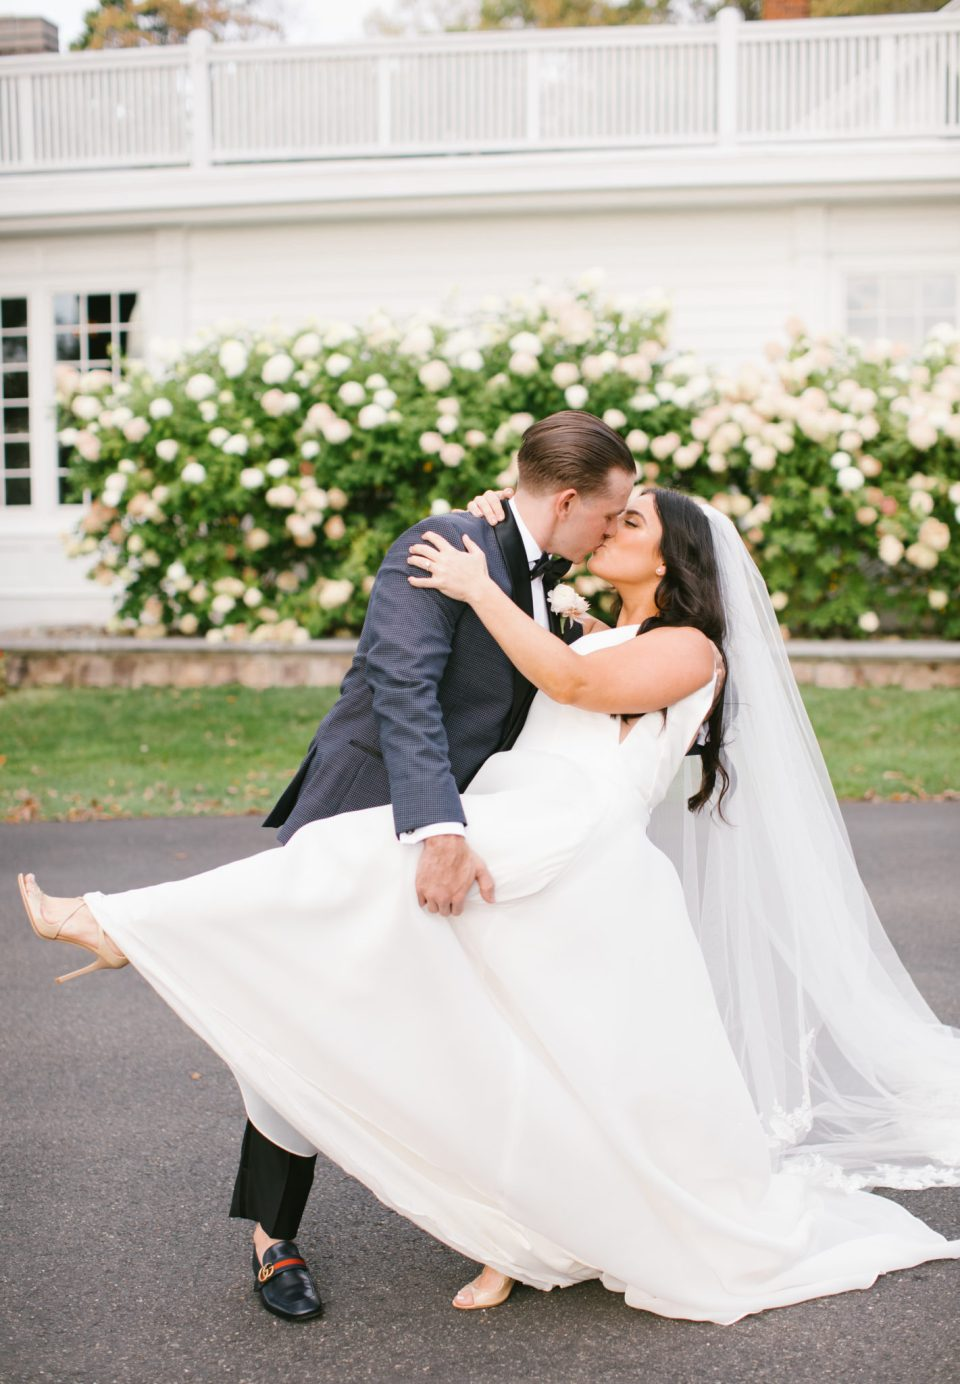 rustic glam wedding day at Ryland Inn photographed by Ashley Mac Photographs